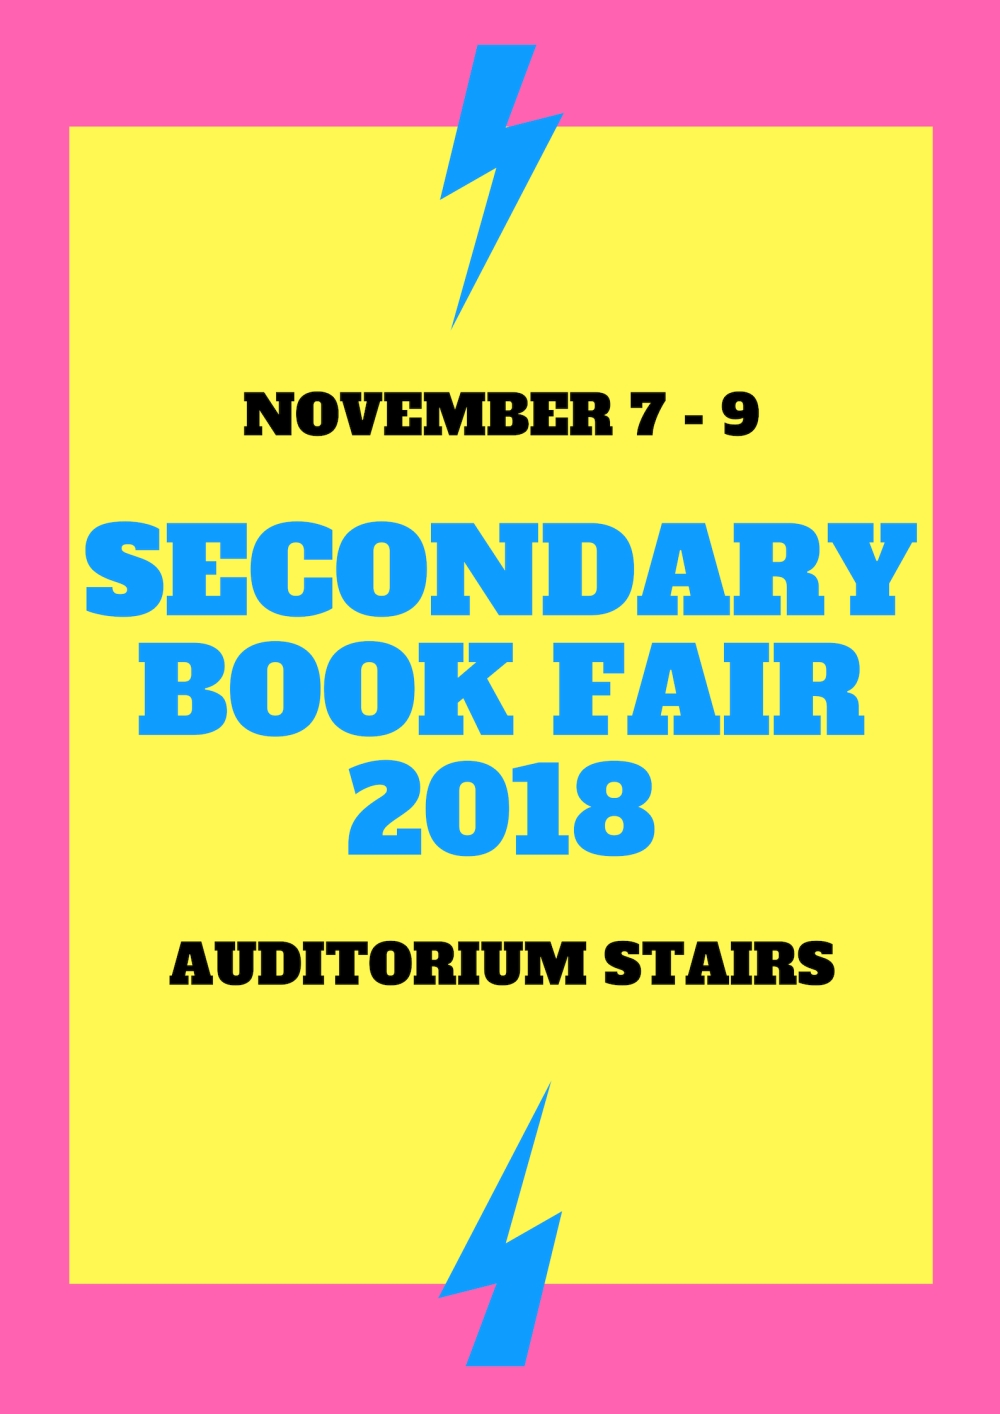 SECONDARY BOOK FAIR 2018